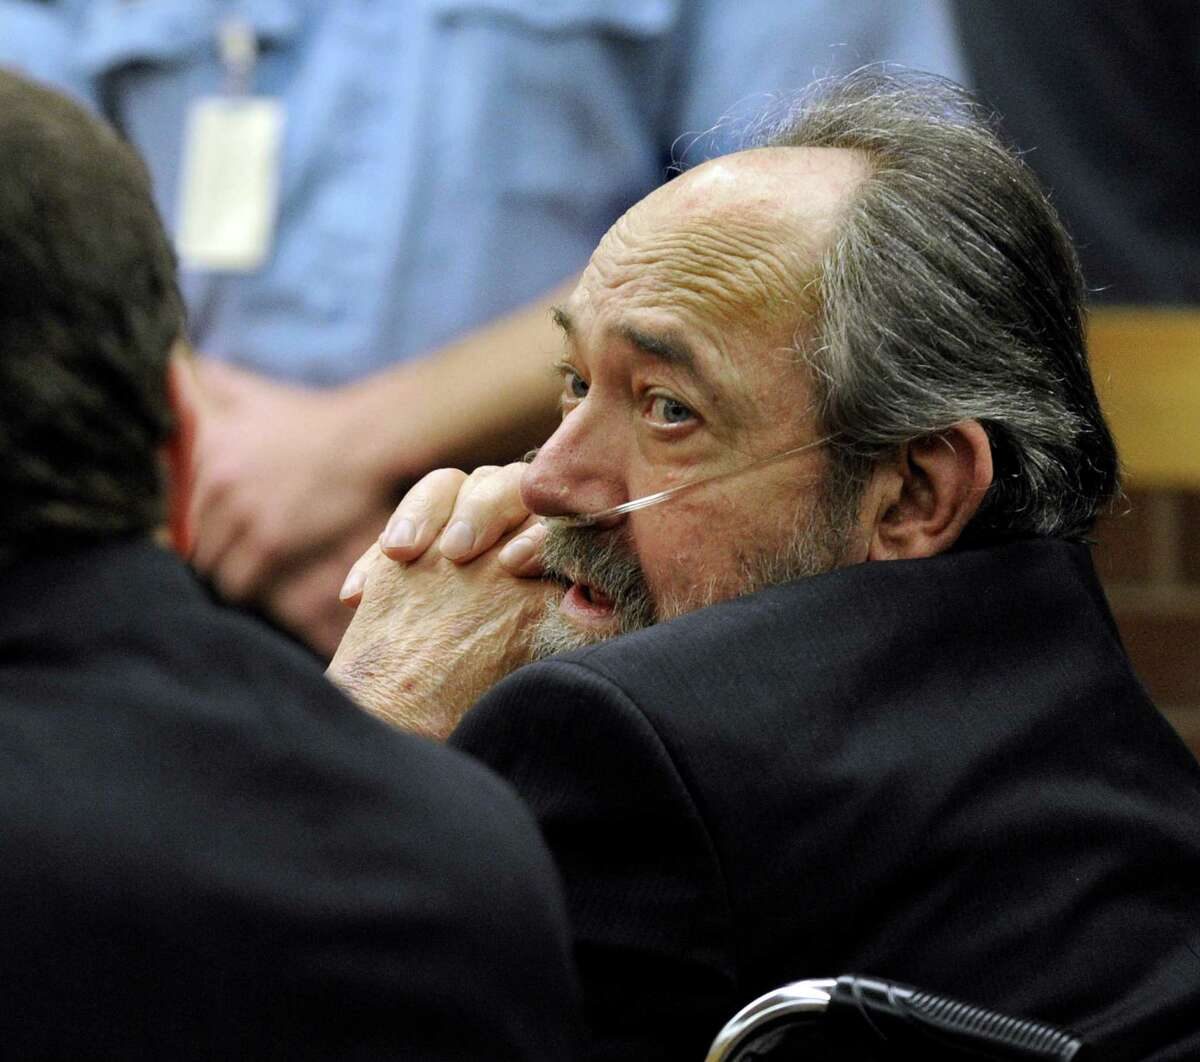 John Heath, right, with his attorney Frank O'Reilly, listens to the verdict as it is read Wednesday, Oct. 2013, at Danbury Superior Court in Danbury, Conn. Heath was found guilty in the death of his wife.